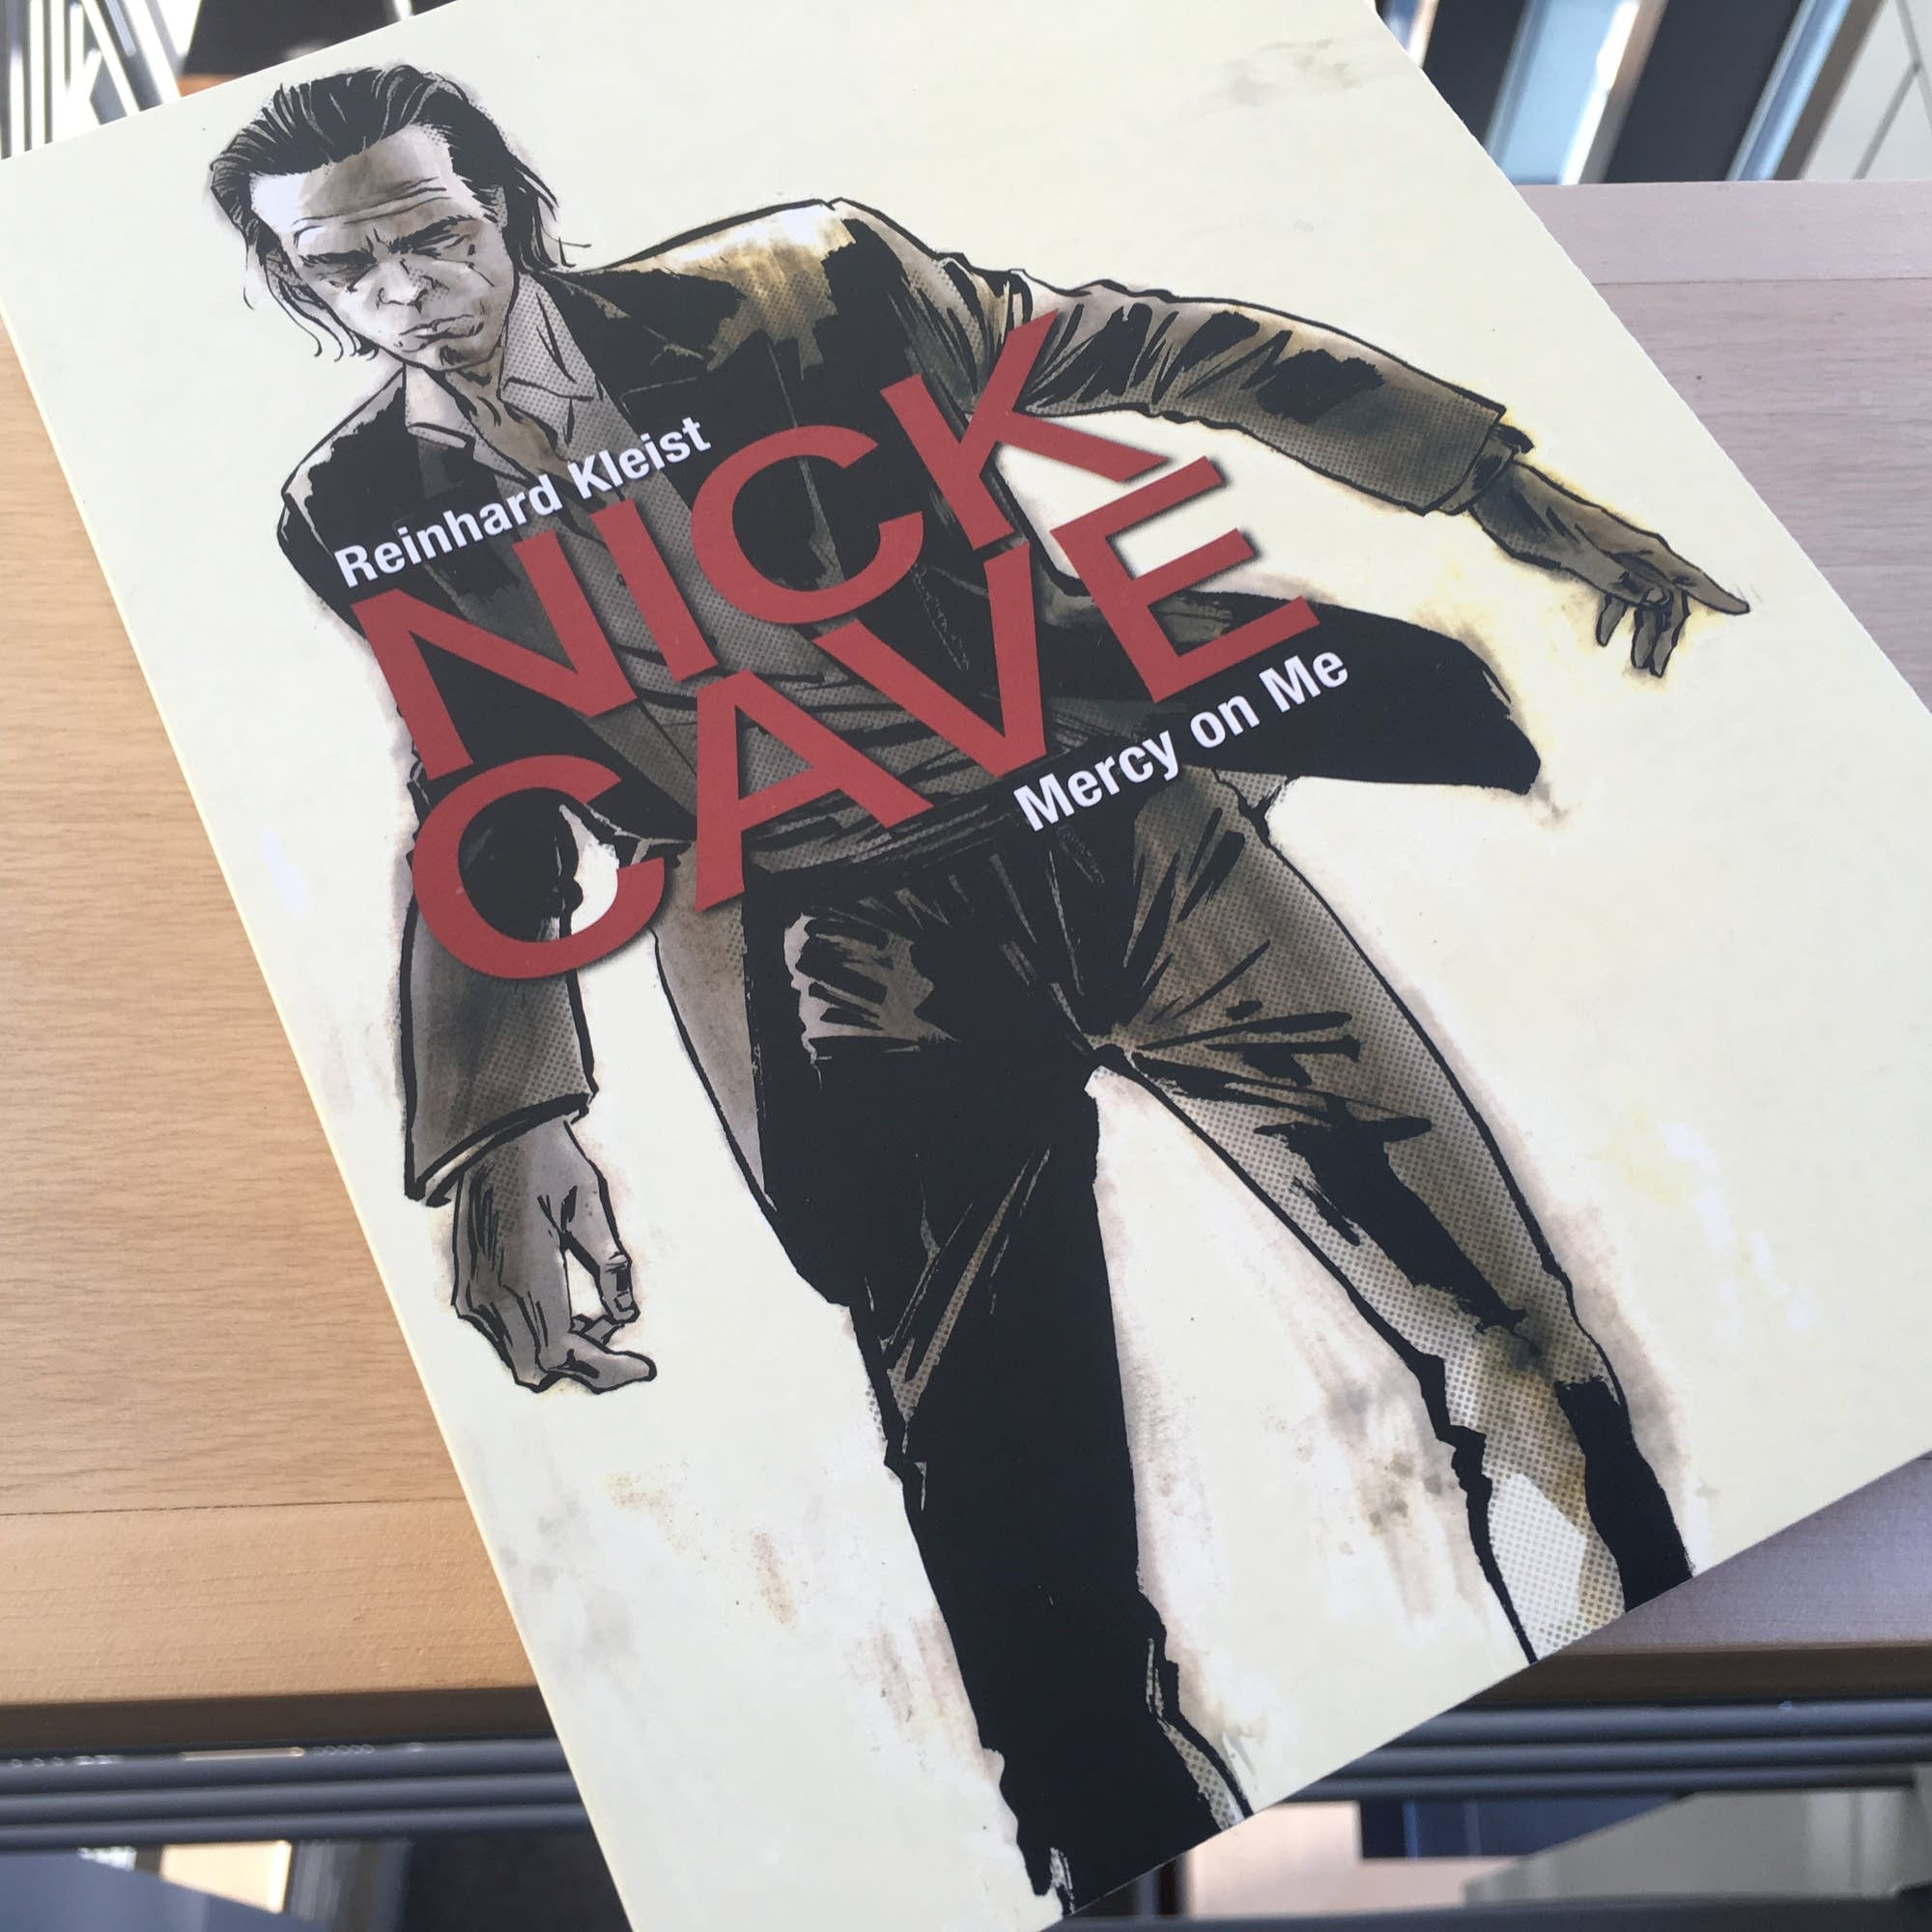 Reinhard Kleist's 'Nick Cave: Mercy On Me.'